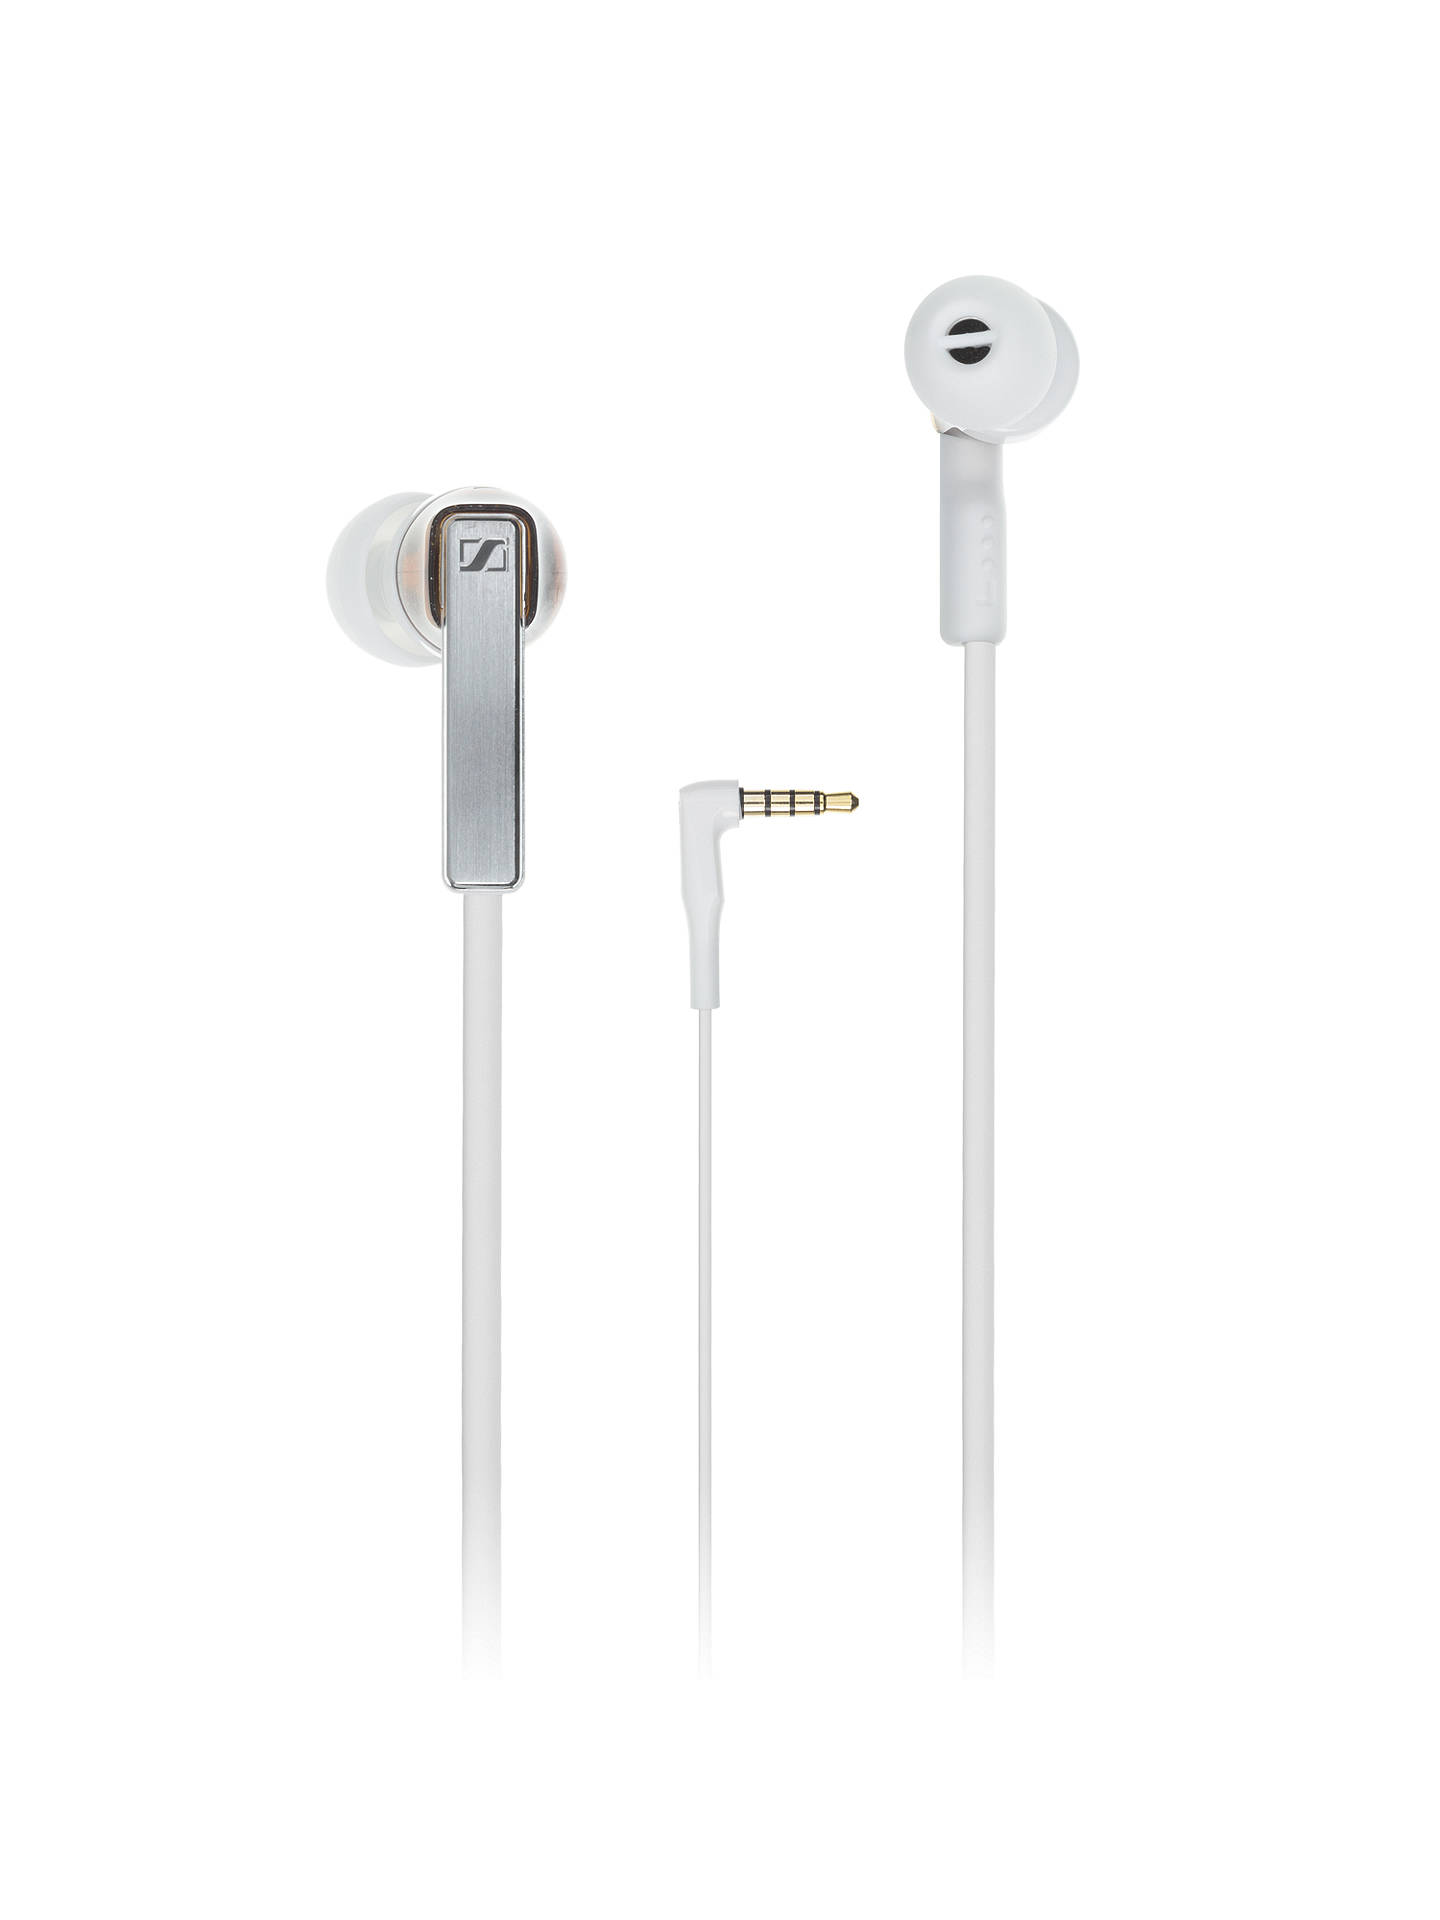 BuySennheiser CX 5.00 G In-Ear Headphones with Mic/Remote, White Online at johnlewis.com